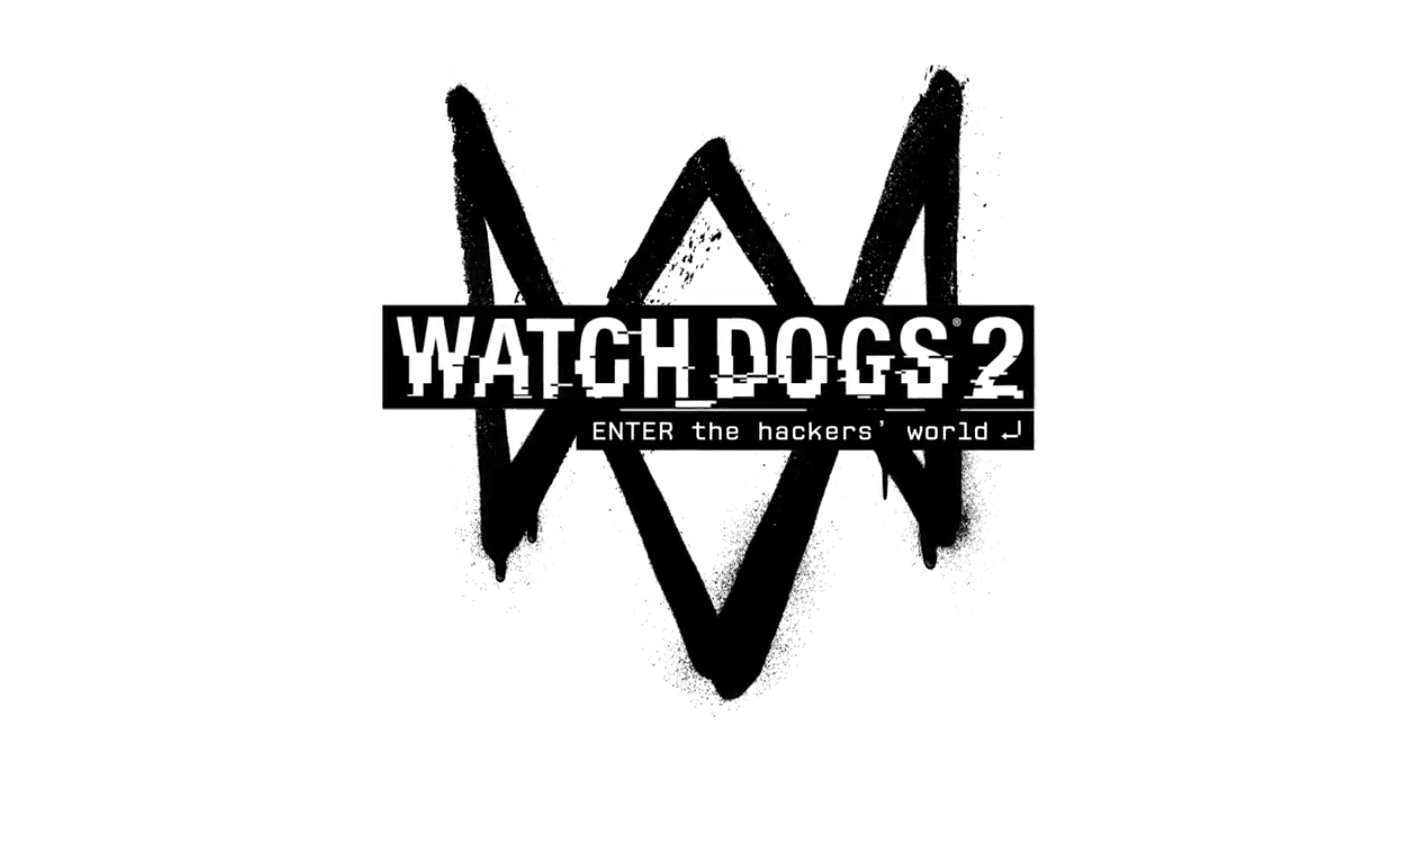 Watch Dogs 2 Trailer Release Date, and Gameplay Footage